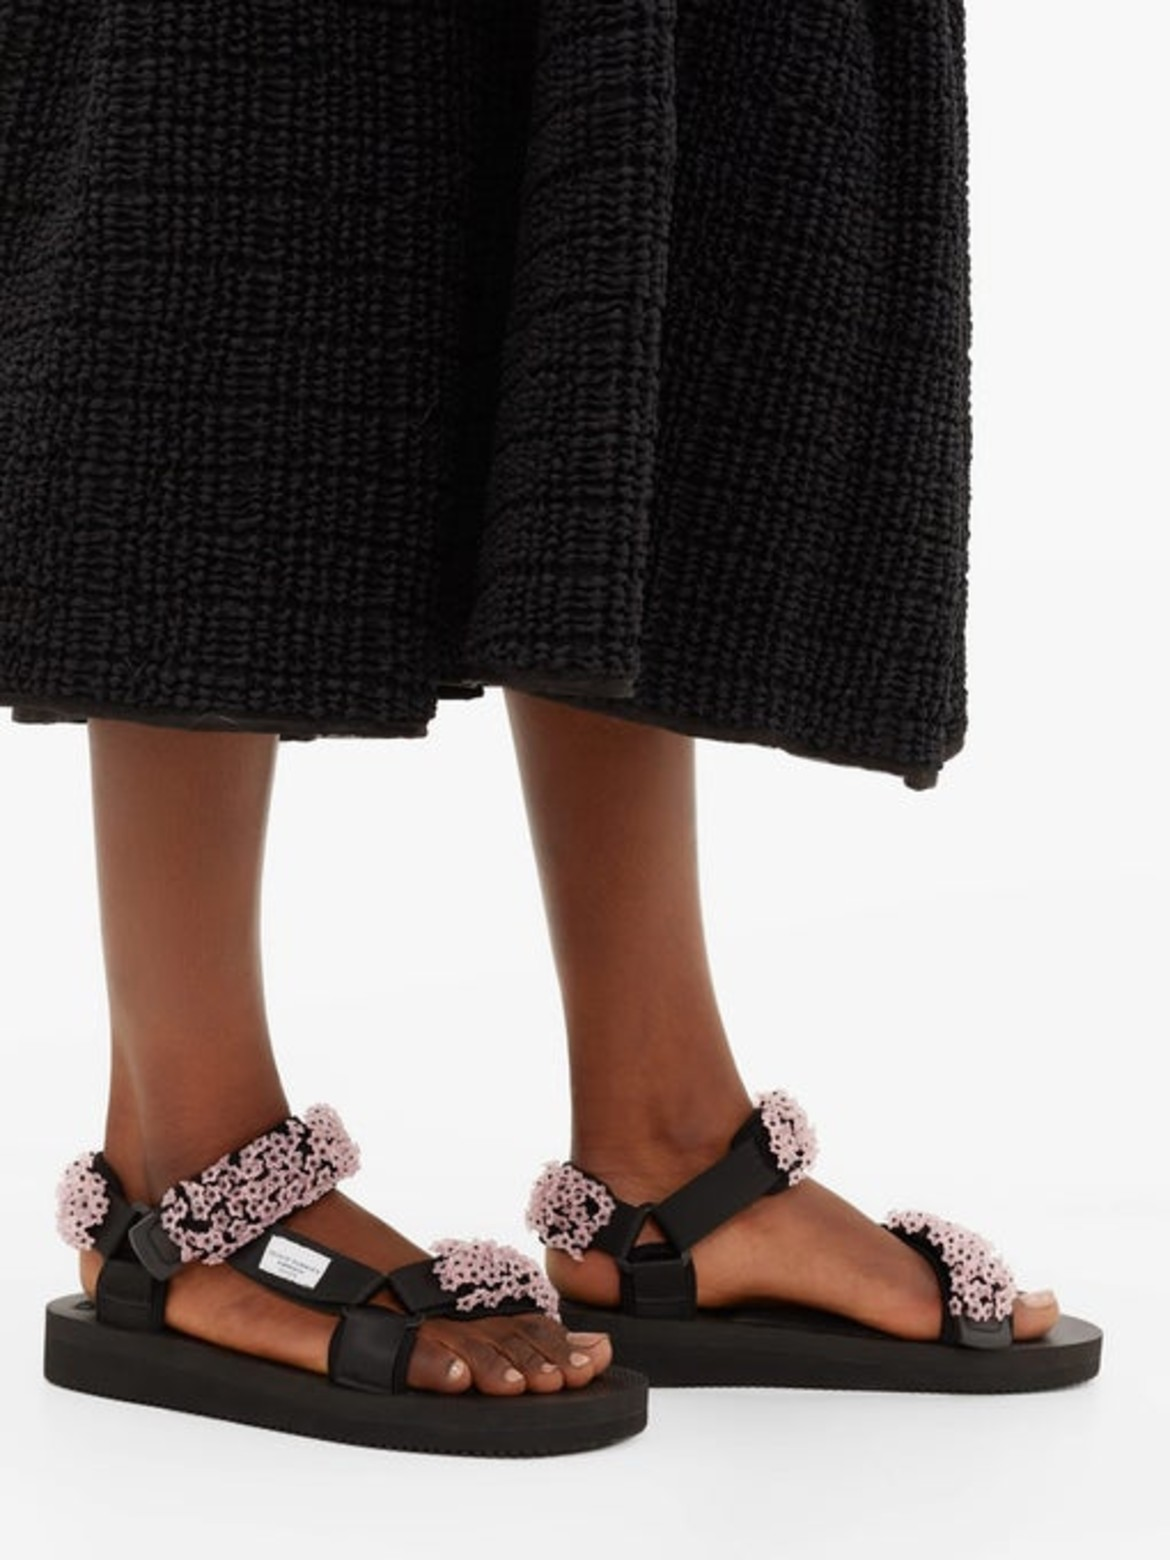 CECILIE BAHNSENX Suicoke Maria beaded Velcro-strap sandalsHK$3,370 from matchesfashion